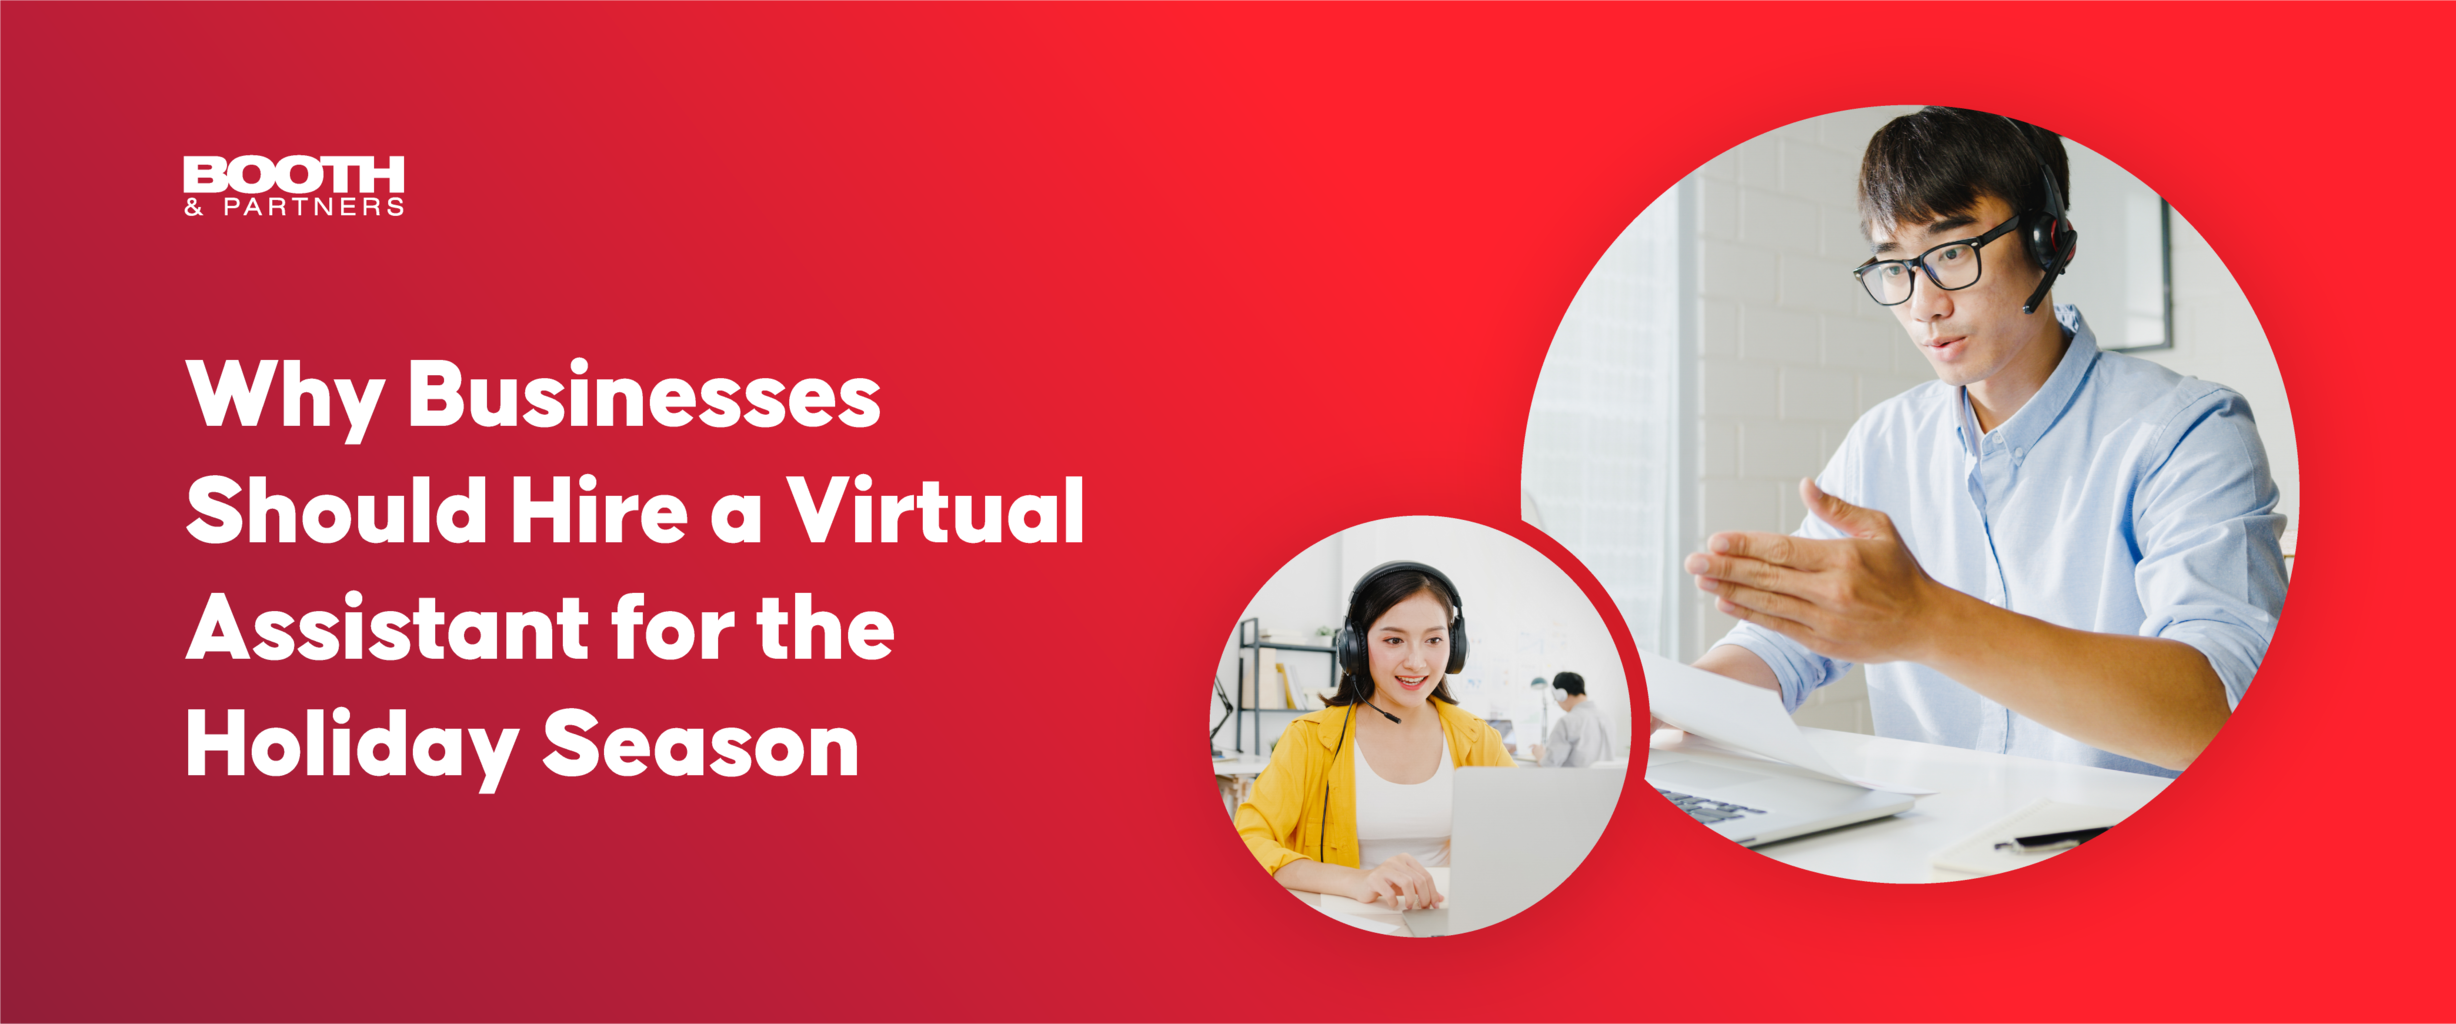 Why Businesses Should Hire a Virtual Assistant for the Holiday Season